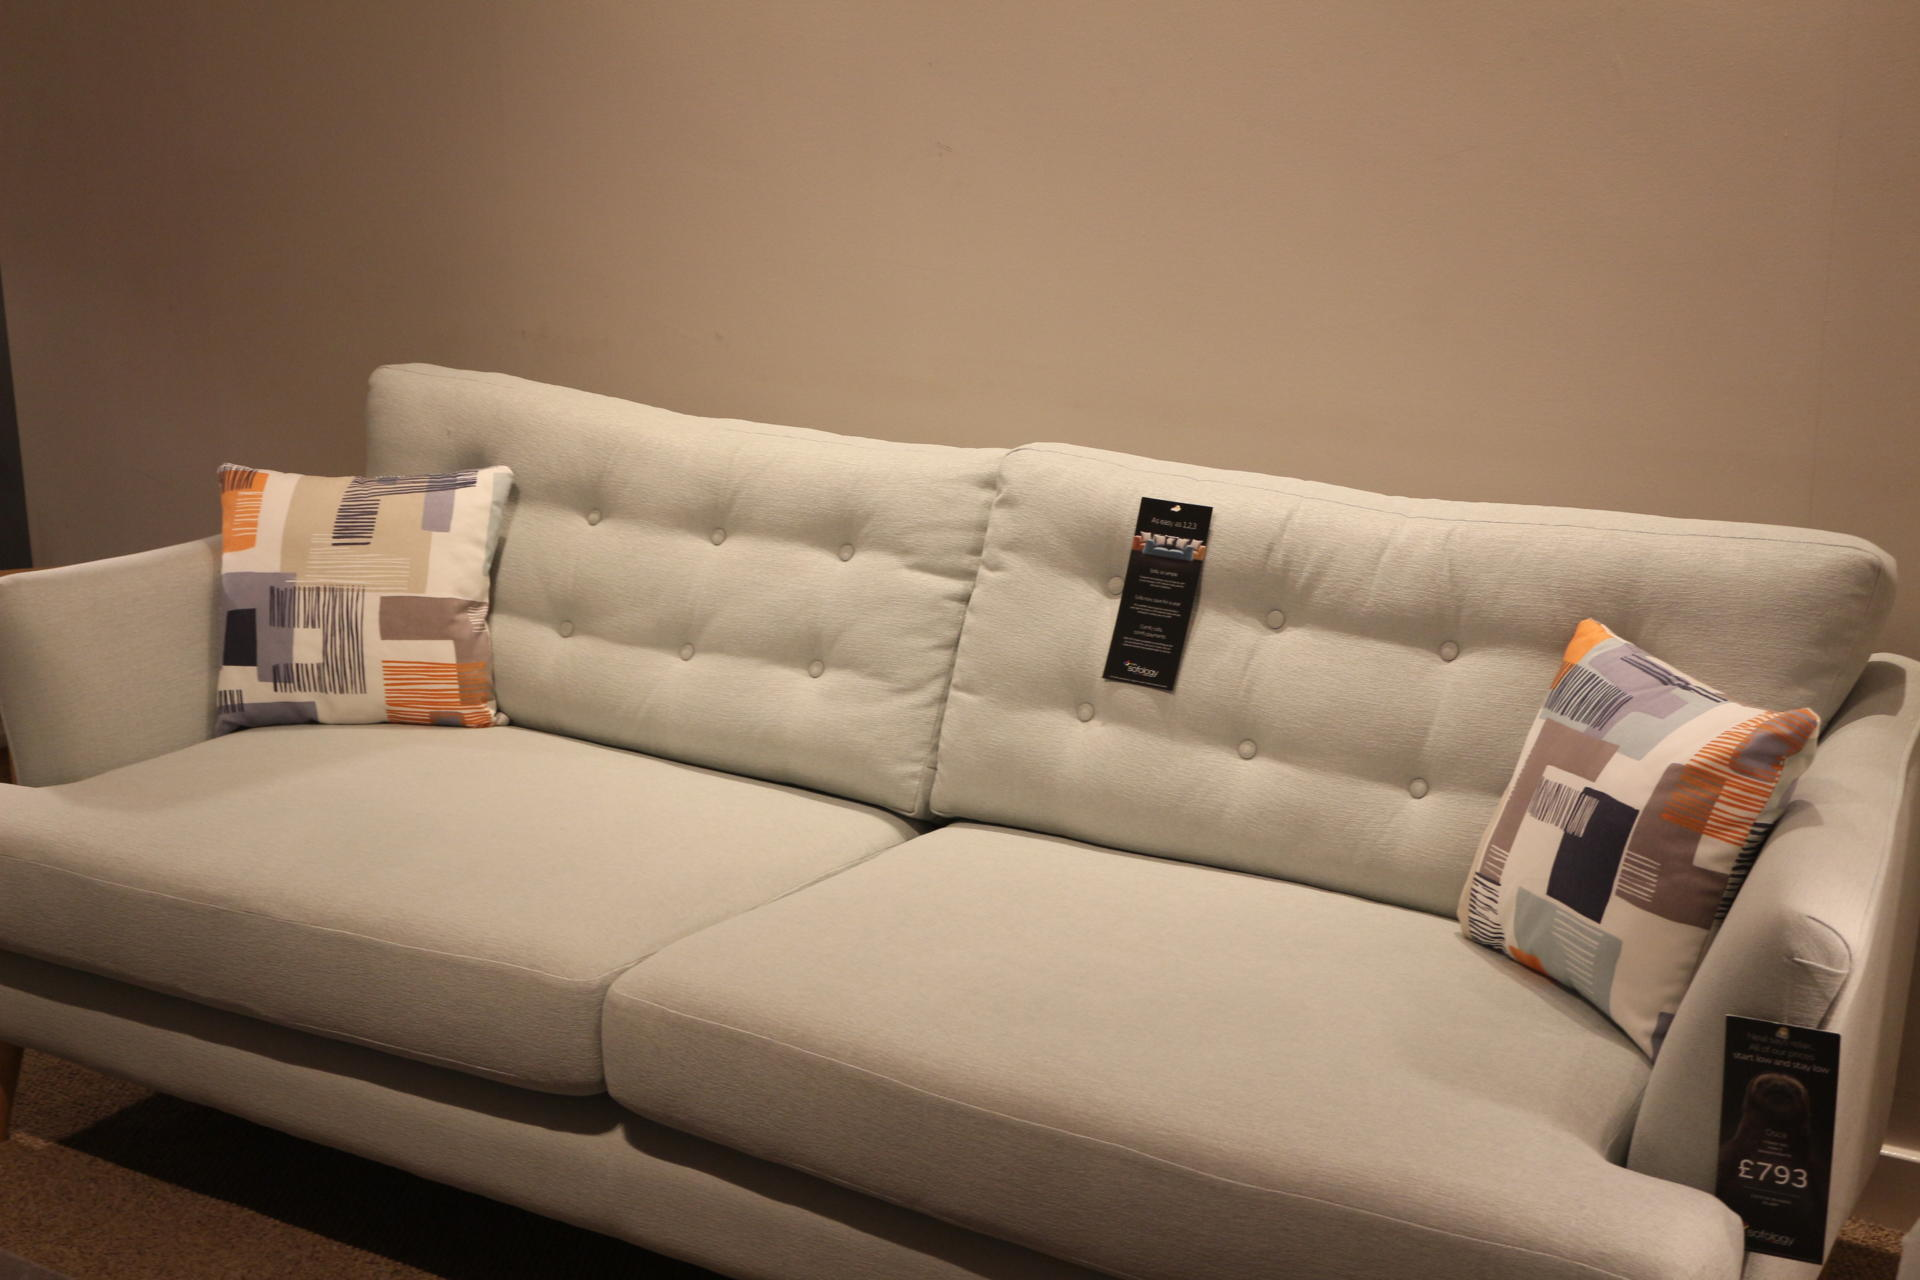 My Sofa Shopping Experience At Sofology White City Manchester